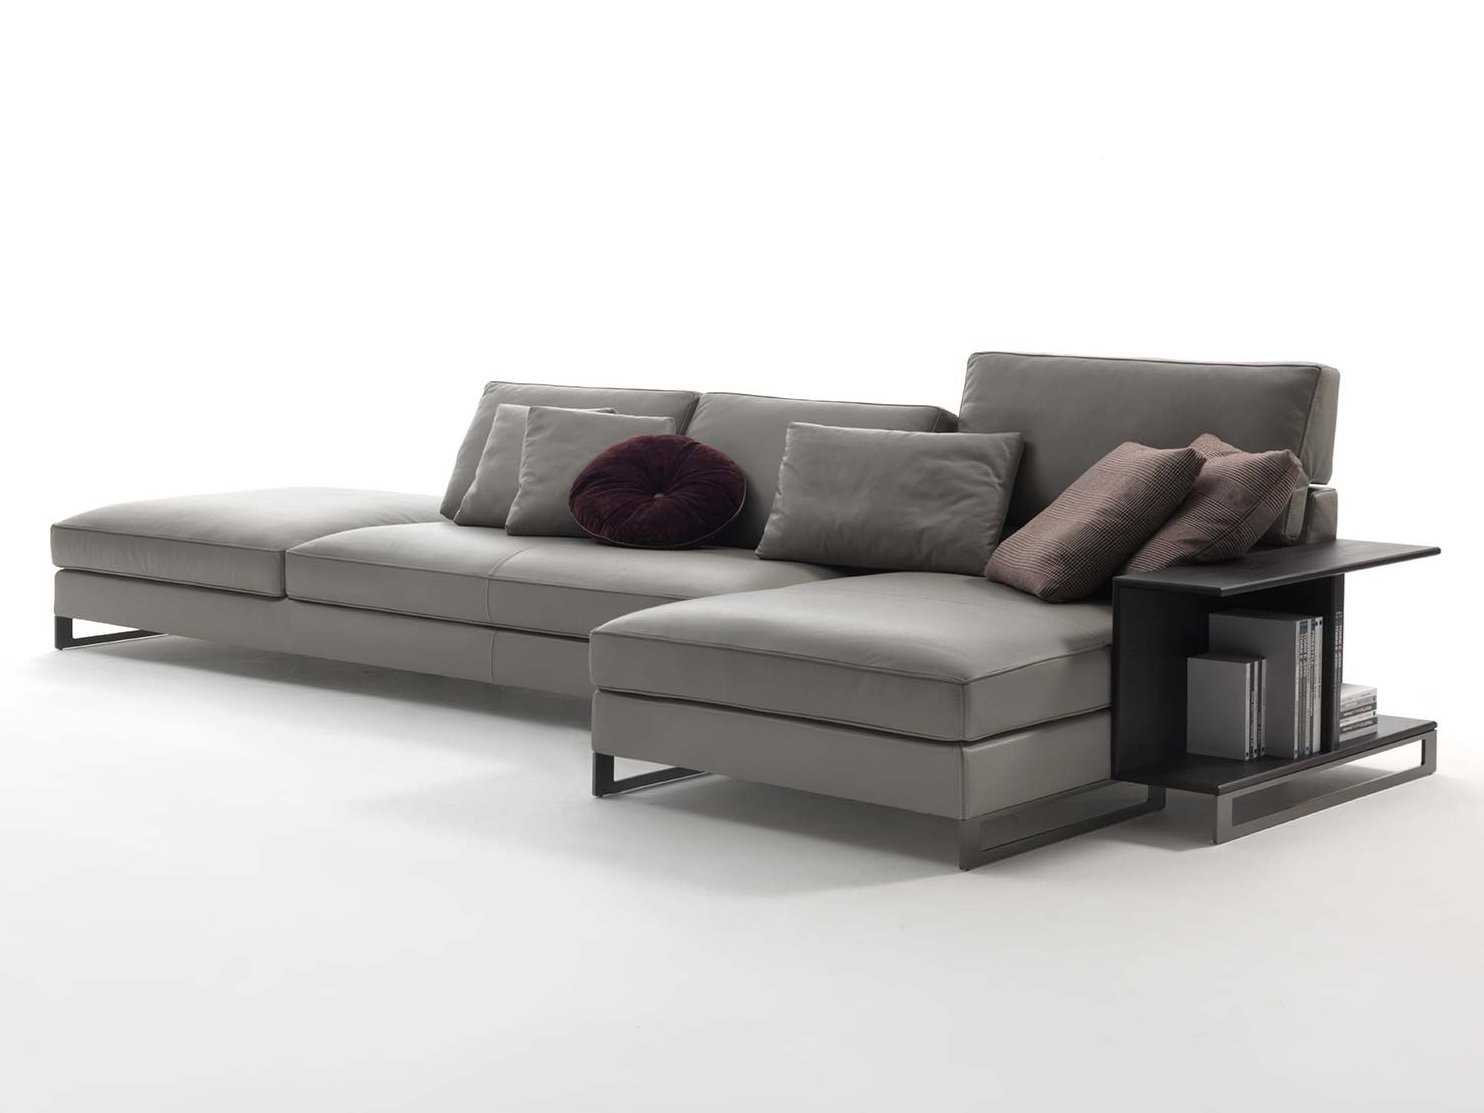 Davis book leather sofa by frigerio poltrone e divani for Poltrone e sofa